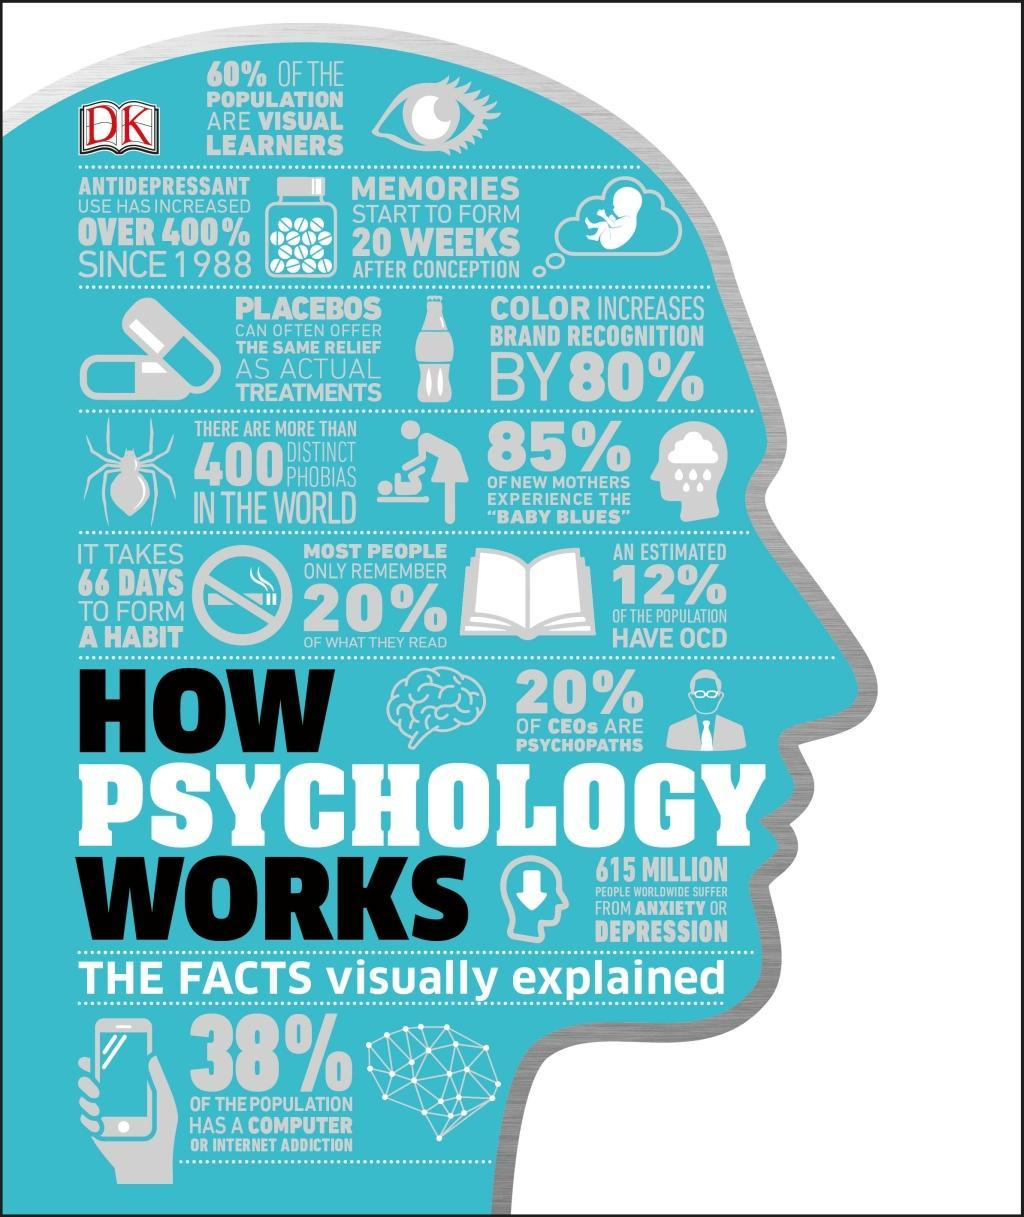 How Psychology WorksThe Facts Visually Explained